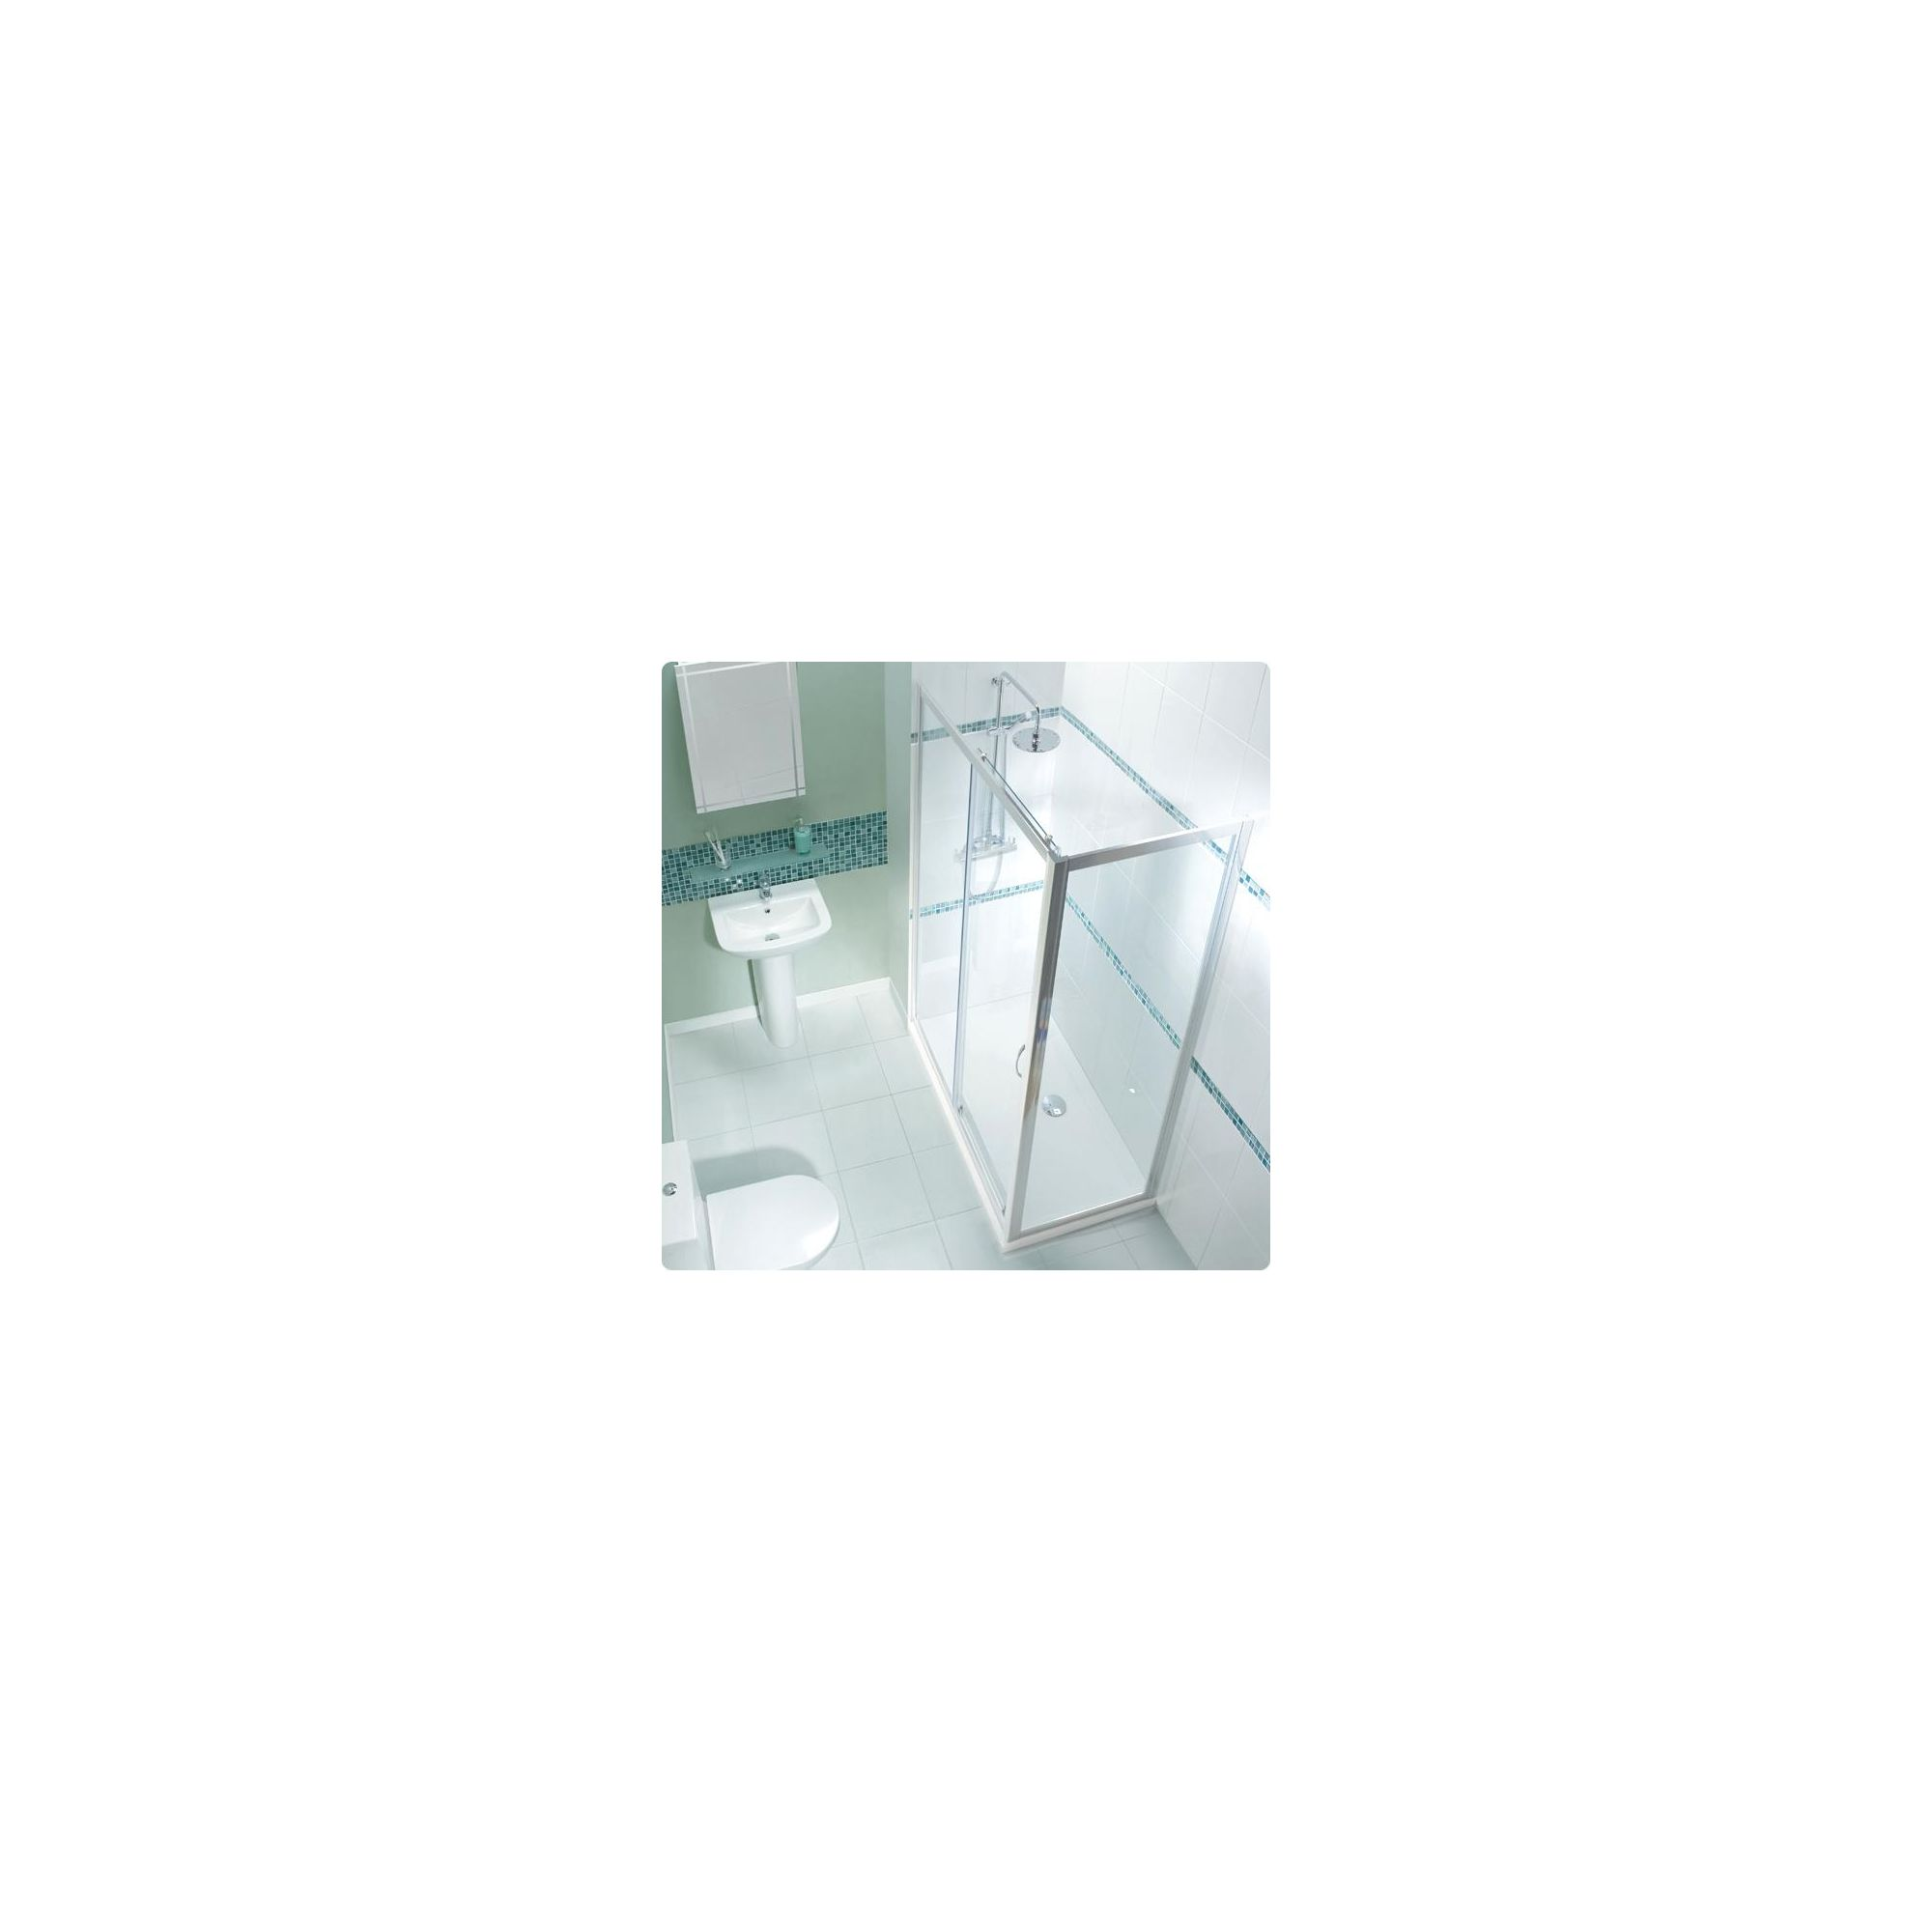 Balterley Framed Sliding Shower Enclosure, 1000mm x 760mm, Low Profile Tray, 6mm Glass at Tesco Direct